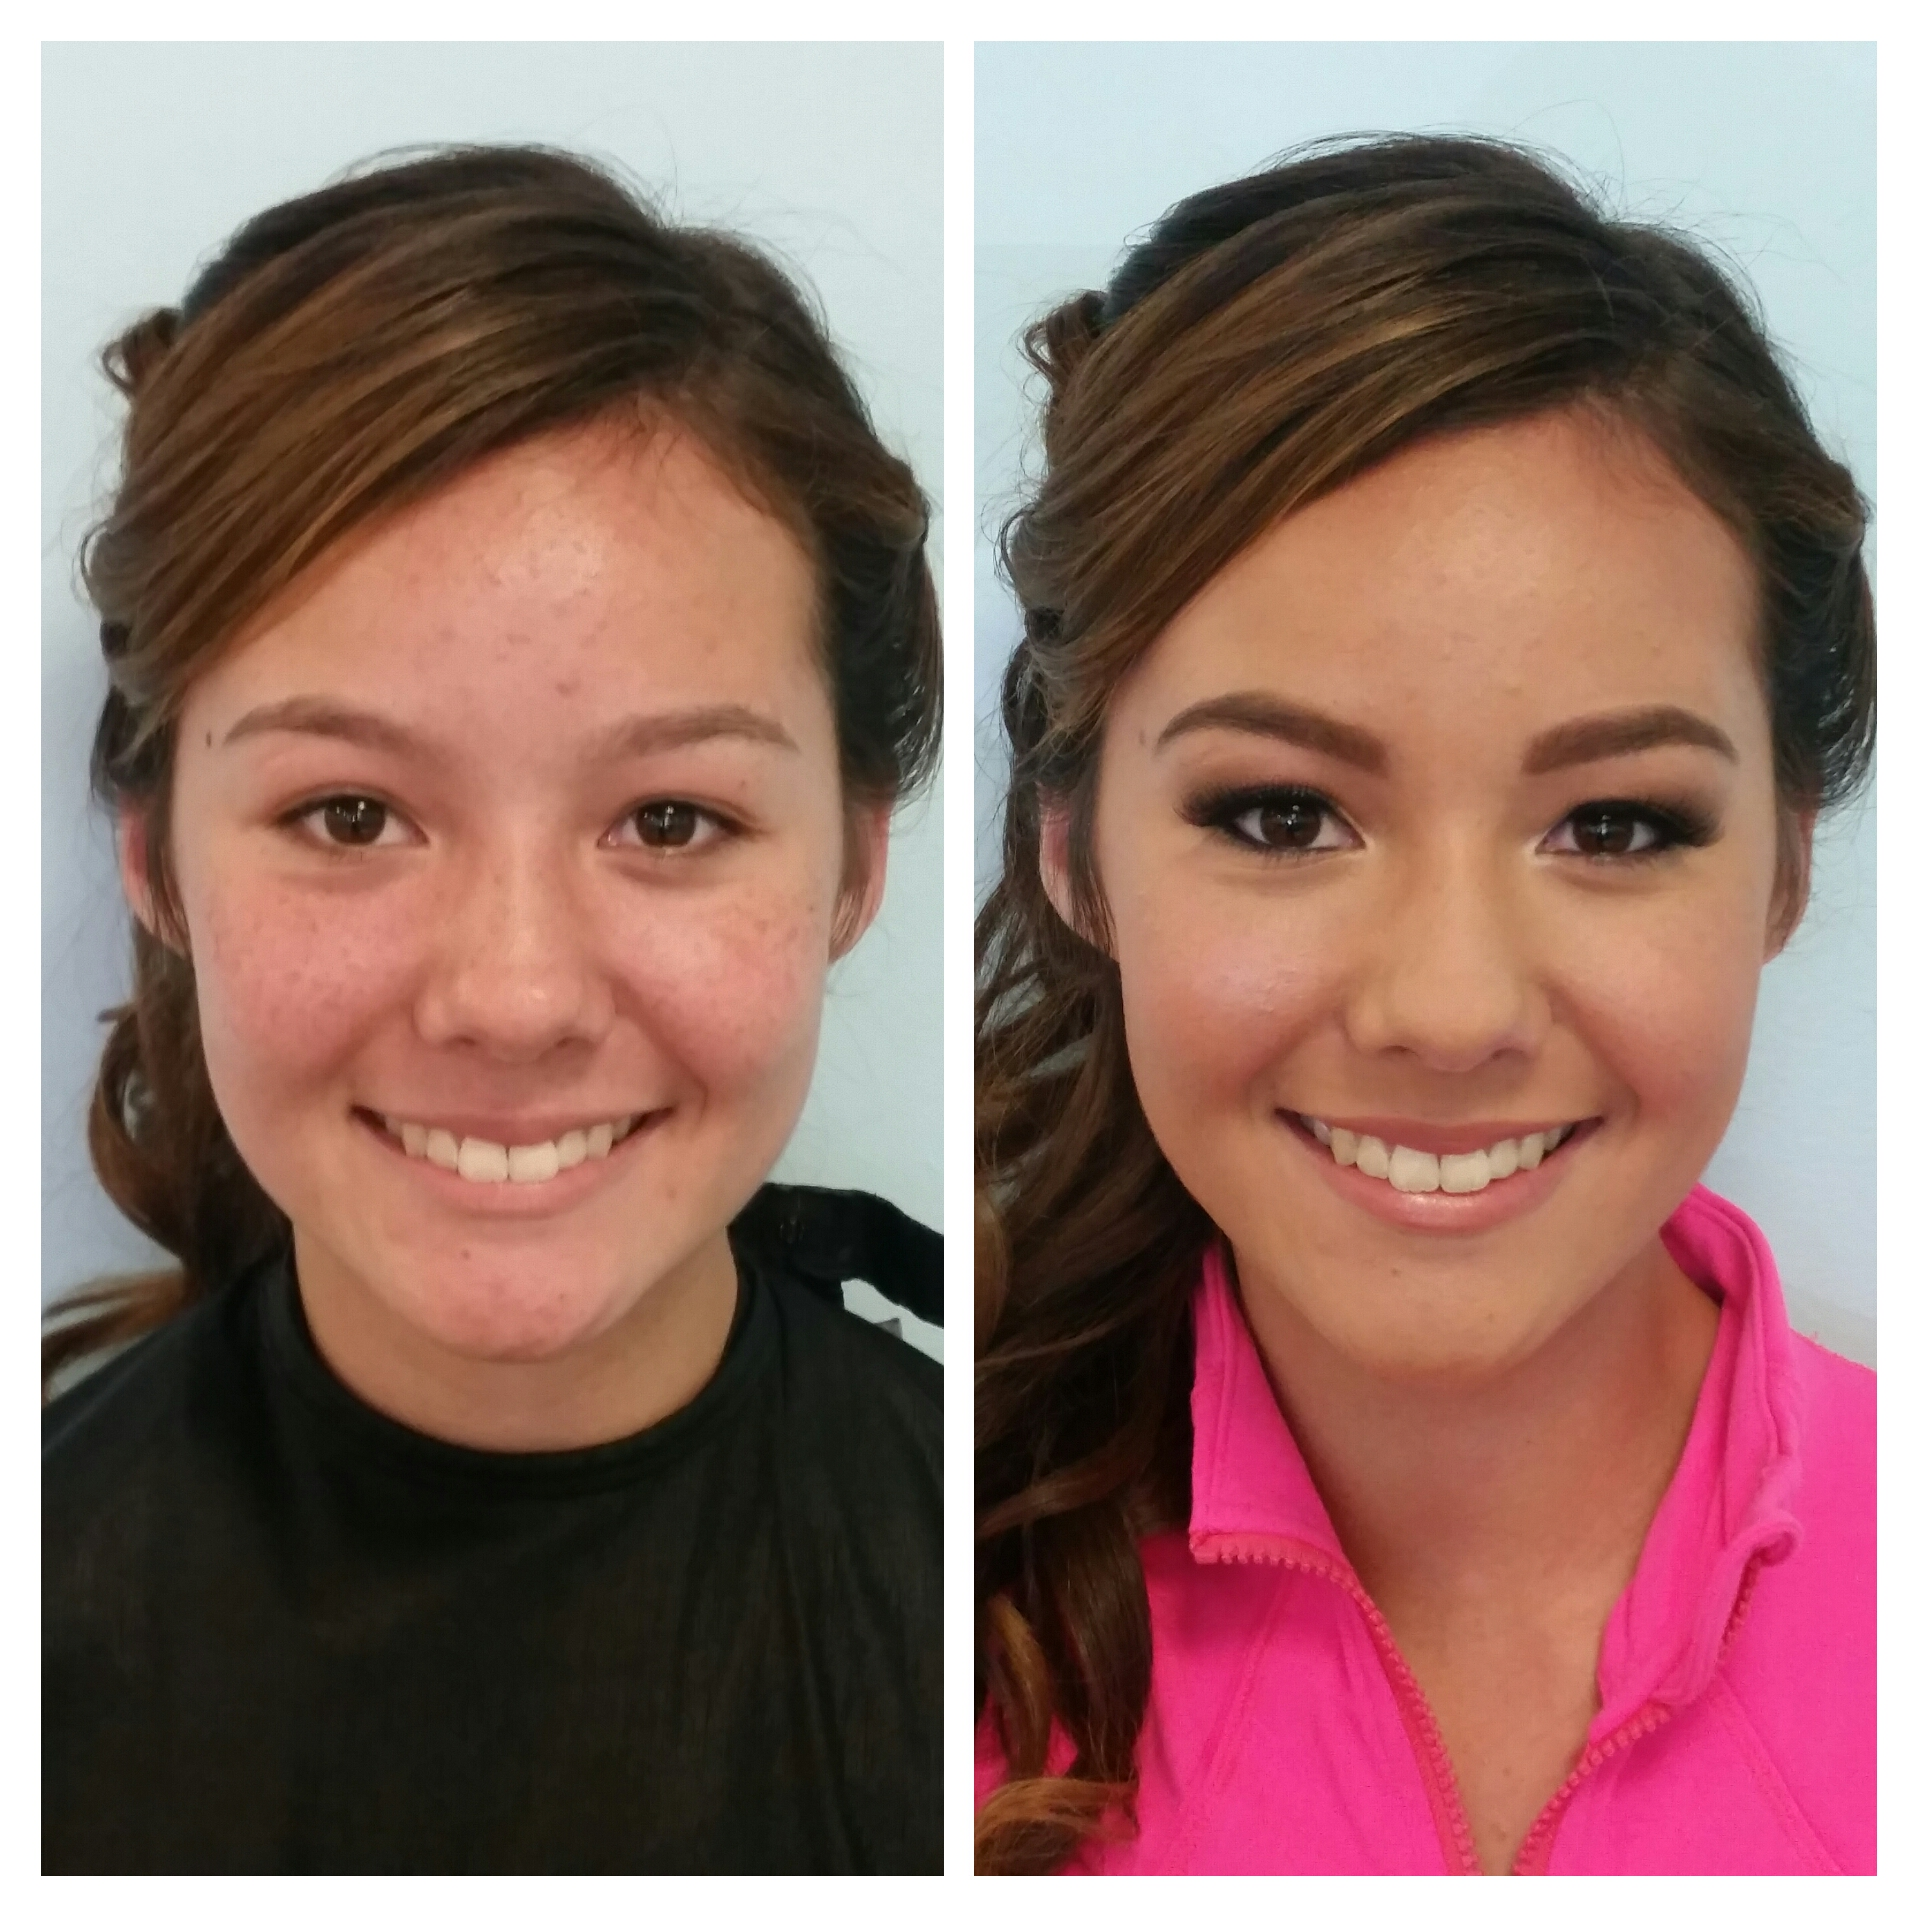 Sophistocated Homecoming Makeup Application with Airbrush and False Lashes by Luminous Beauty Makeup Artist.jpg